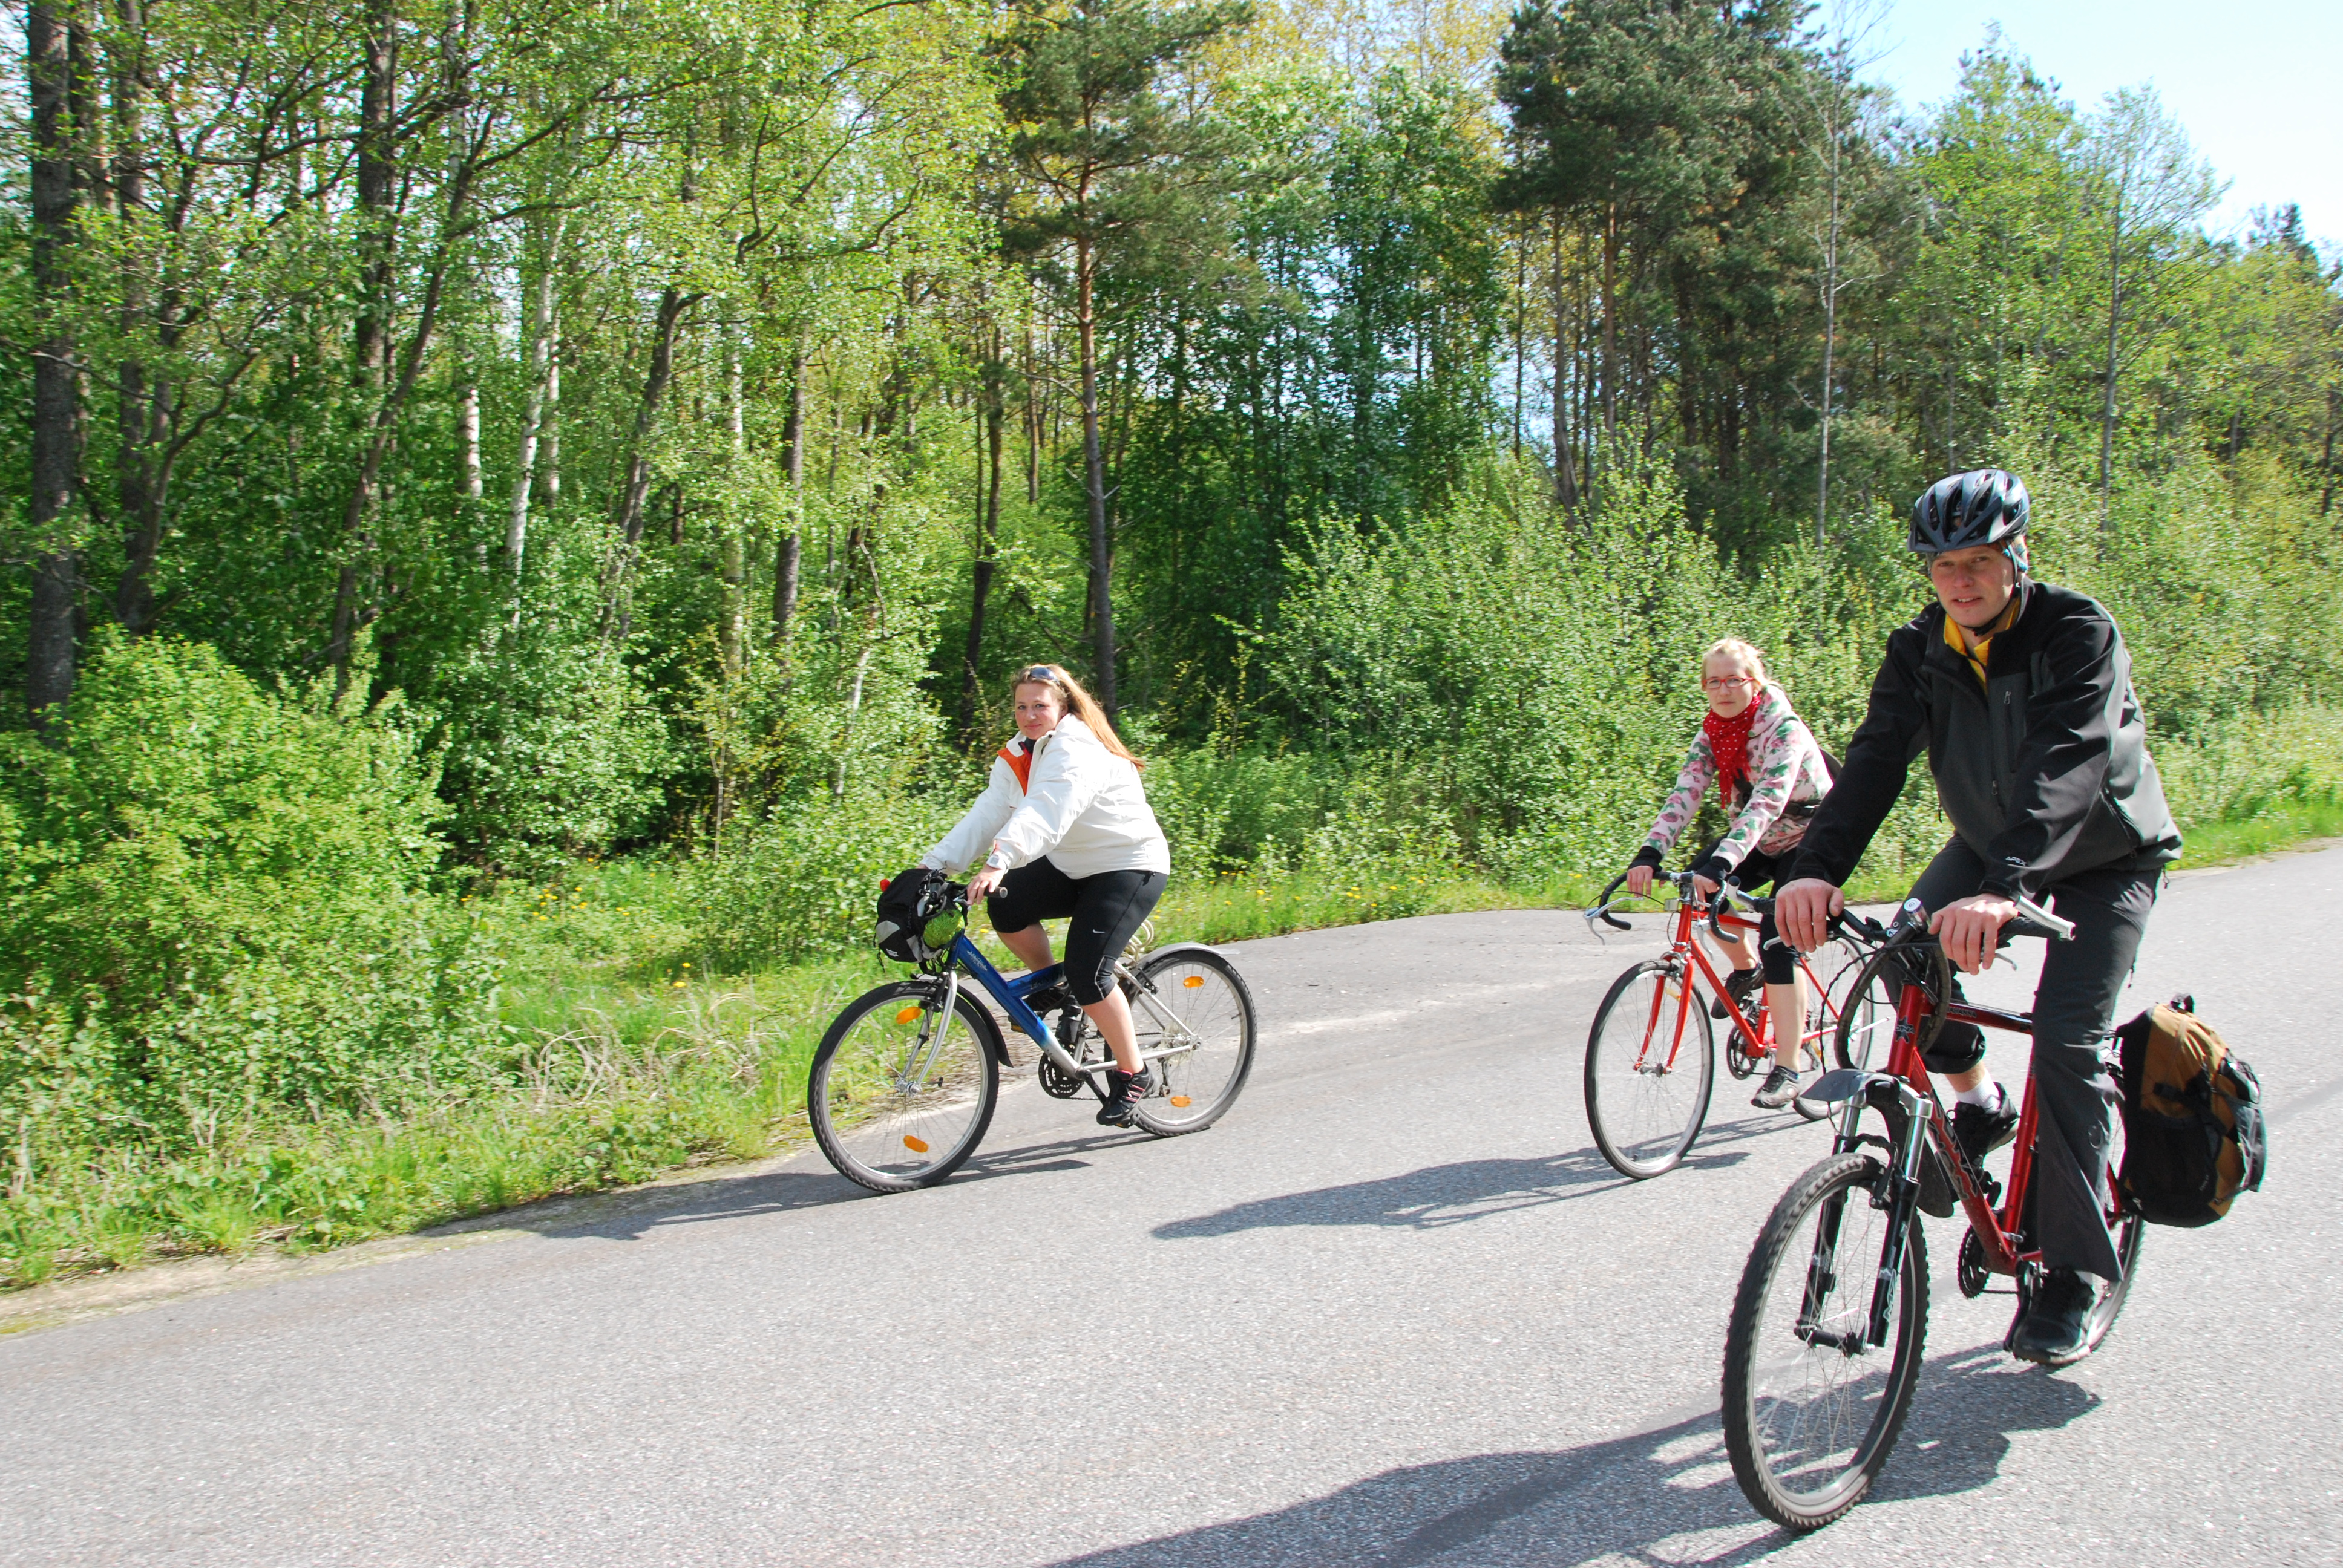 59d5ddd053f We have prepared for cyclist a beautiful 1-day-ride through nature and  history on their own from Pärnu to Soomaa National Park (about 45 km).